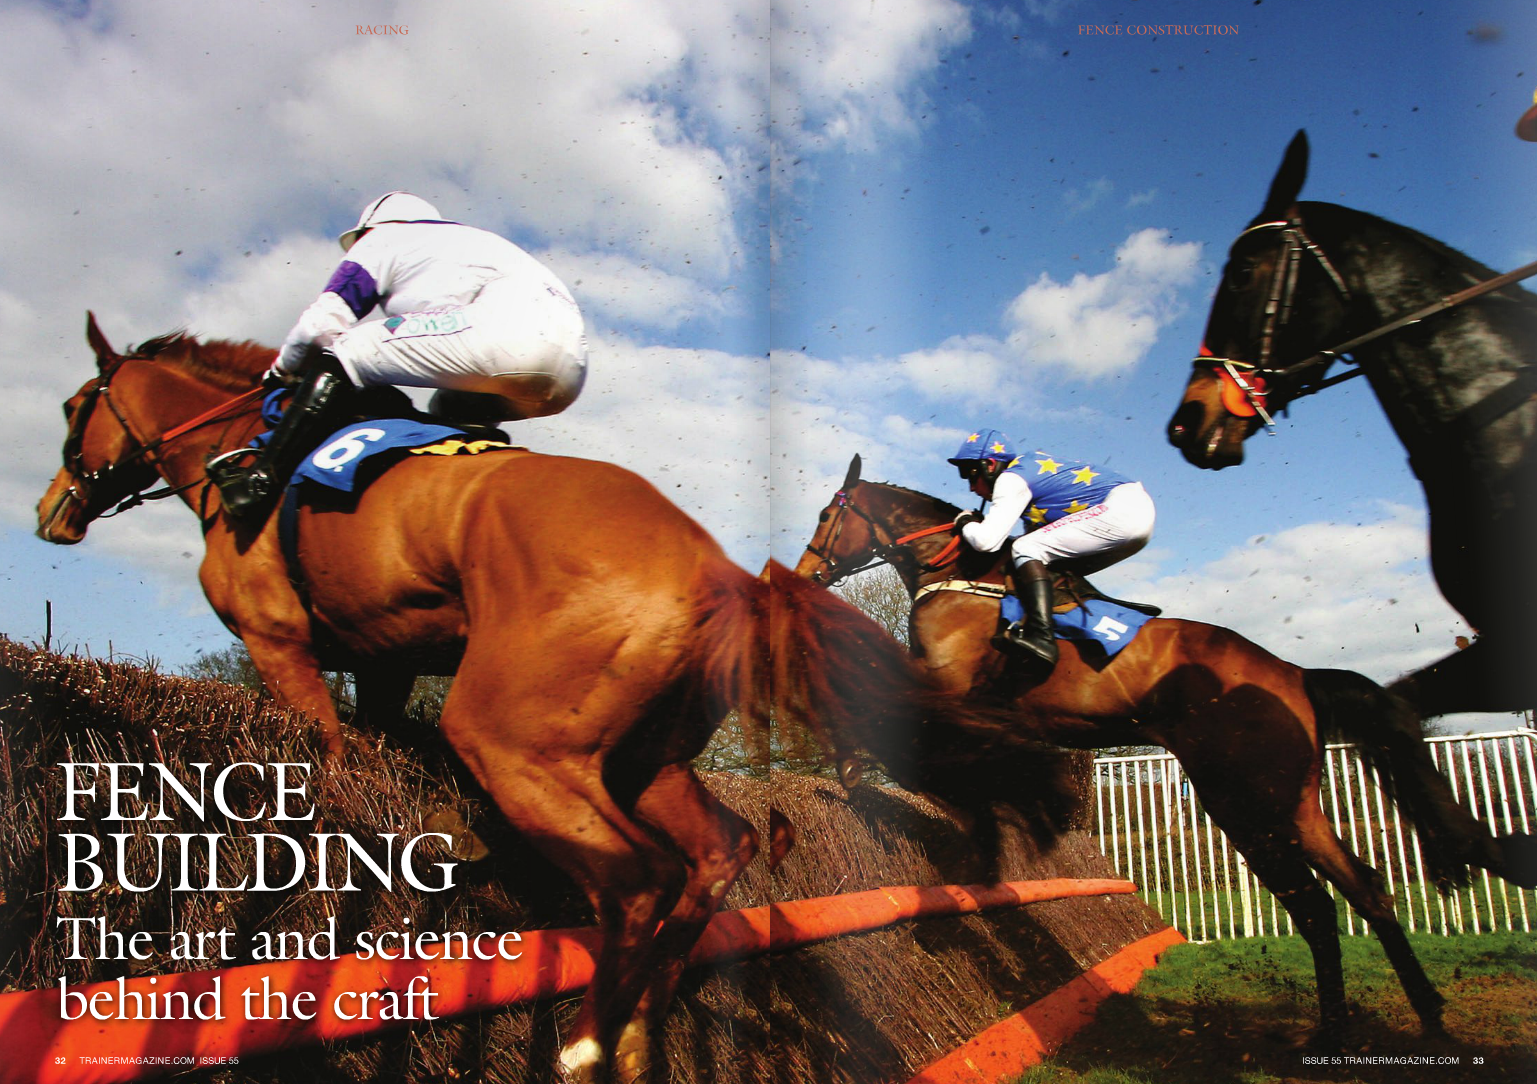 """F ENCE and hurdle building has become part science, part art form, achieving consistency through regulations laid down by racing authorities and aesthetic appeal through the bespoke skills of people who create and dress the jumps. The finished result brings pride to racecourse ground staff, but more importantly is aimed at providing horses with a familiar and consistent obstacle each time they line up for a race. Not that the French follow that theory, for their steeplechases involve obstacles in a variety of shapes and sizes – Henri Pouret, France Galop's director of racing, says the variations are a throwback to the time when horses raced across the countryside. The steeplechase course at Enghien is probably the closest you will find to one in Britain or Ireland, but even there, races include a bullfinch and a banquette. Some small rural tracks even hold races over 'haies' (natural hedges), further proof that tradition dies RACING Jump racing's most iconic symbol, the steeplechase fence, has tested horses and riders since Messrs O'Callaghan and Blake settled a wager in 1752. Their race, said to be the first steeplechase – quite literally, for the course ran between two County Cork churches, starting at Buttevant and ending at the steeple of St Leger Church – was a cross-country caper involving the negotiation of any obstacle that lay in their path. In appearance it was a far cry from the carefully-tended sward and neatly built jumps that are seen at contemporary racecourses, but the two gentlemen had set a sport, and an industry, in motion. WORDS: CARL EVANS PHOTOS: CAROLiNE NORRiS, WATT FENCES 34 TRAINERMAGAZINE.COM ISSUE 55 Linley, who has been inspecting courses for nearly 30 years, says: """"The people who make fences today do a fantastic job overall, and grade the birch more thoroughly than in the past. Racecourses replace fences [by renewing all birch] every other year, which means you avoid the horrible dead birch which used to be common in the bottom of fence"""